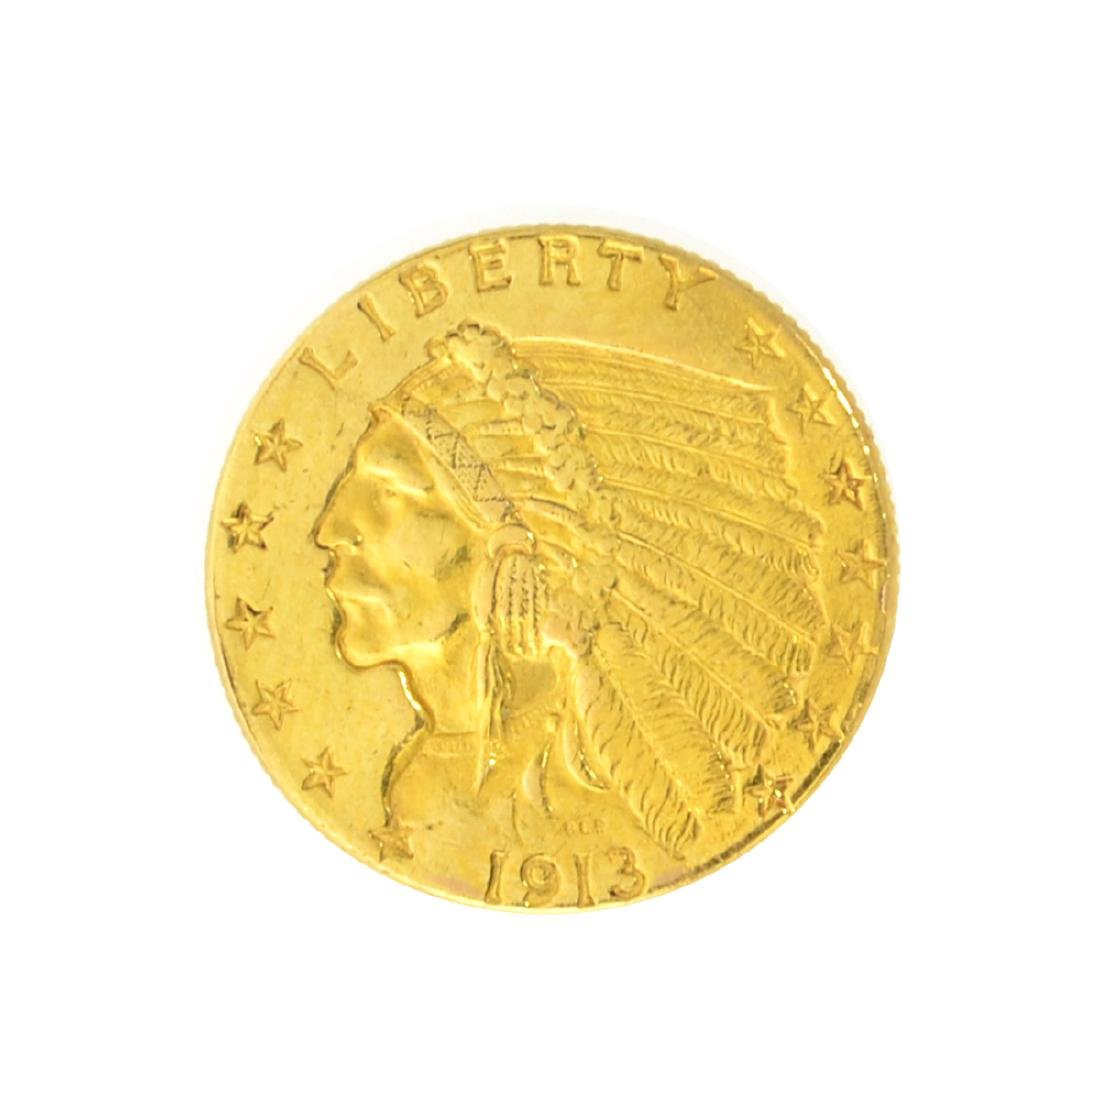 *1913 $2.50 U.S. Indian Head Gold Coin - Great